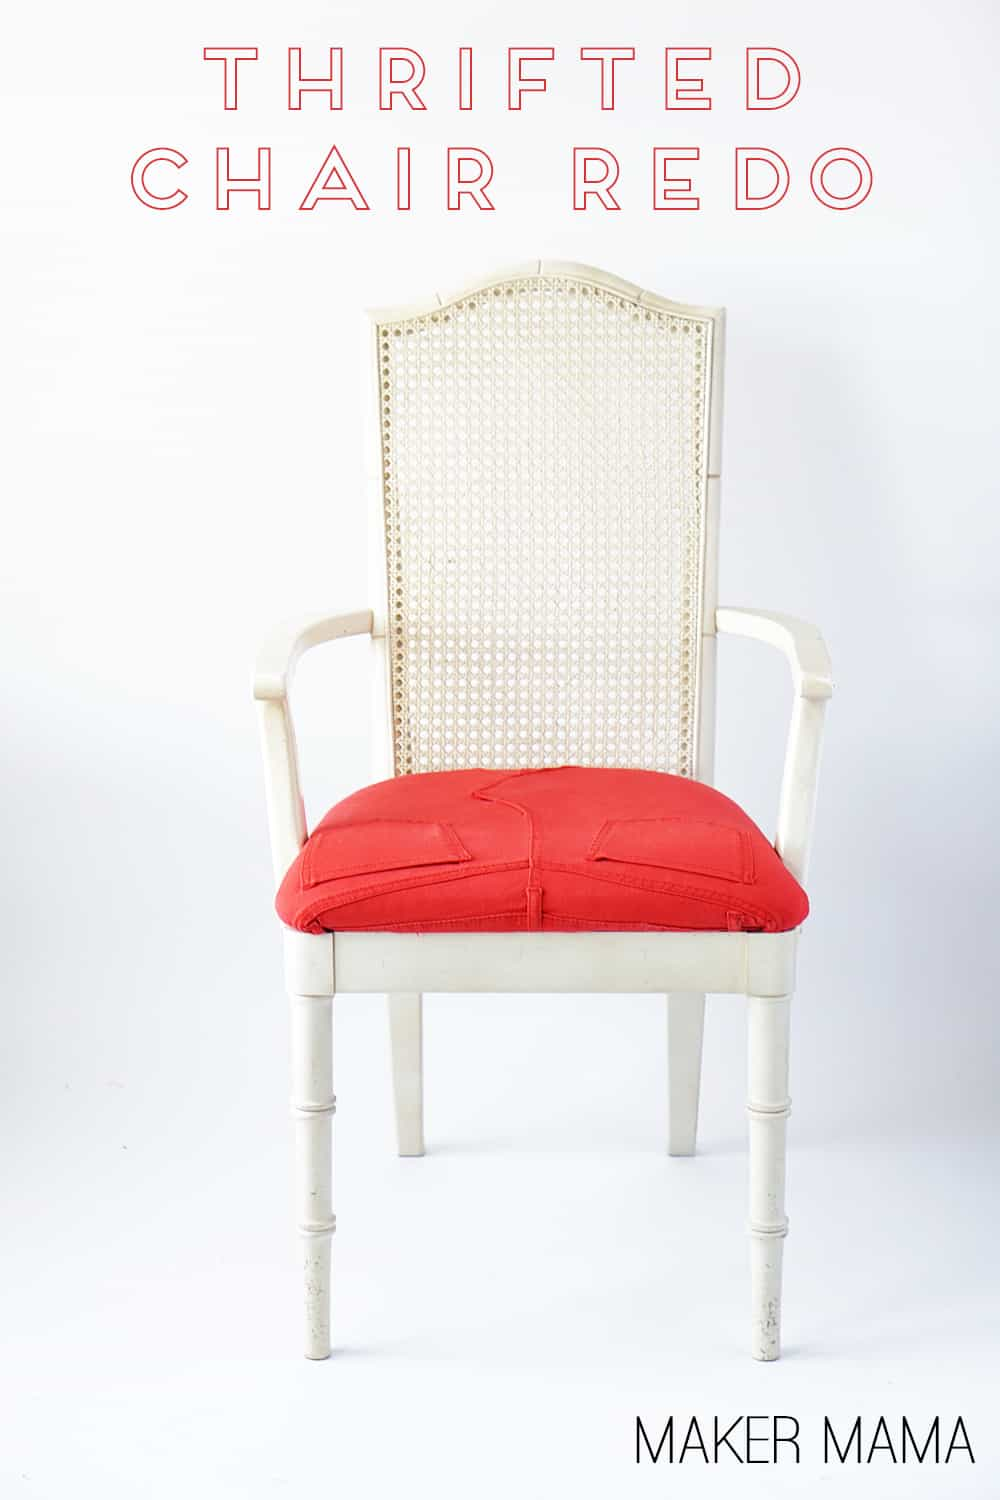 Learn how to upcycle a pair of colorful pants - reupholster a chair and give it a bright and fun new 'seat.'